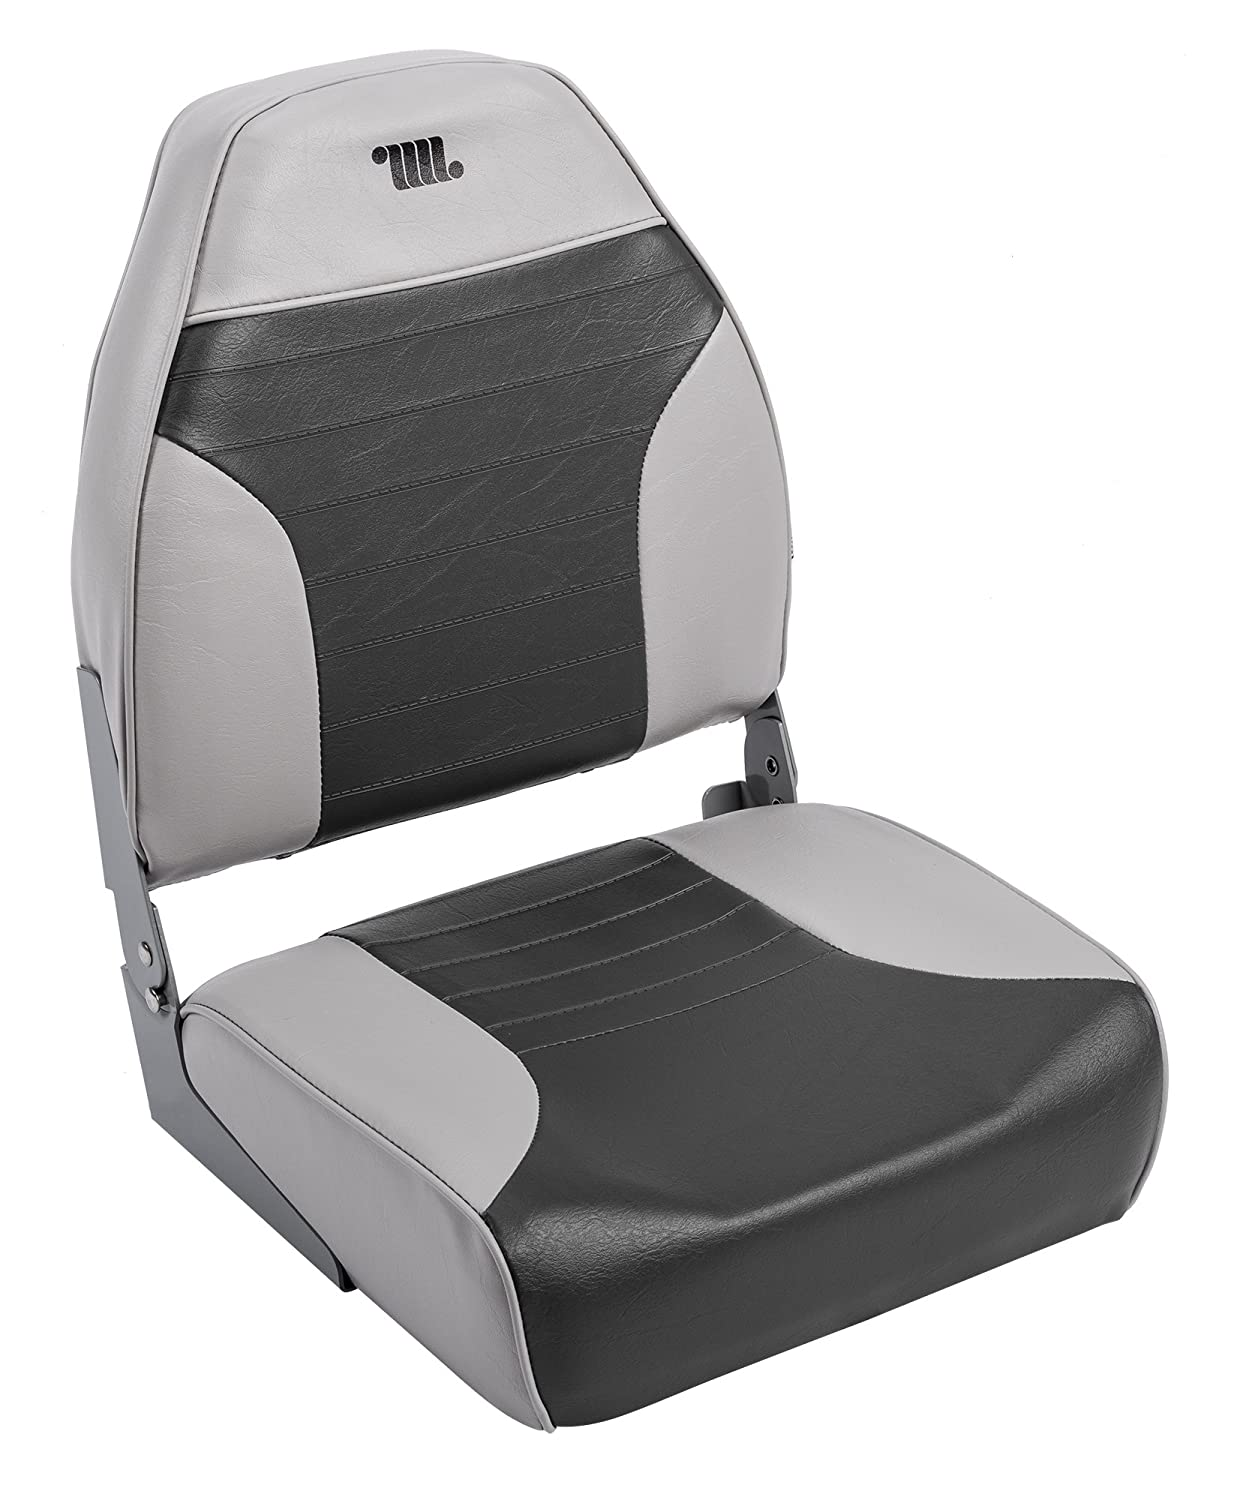 Wise 8WD588 moulded boat seat